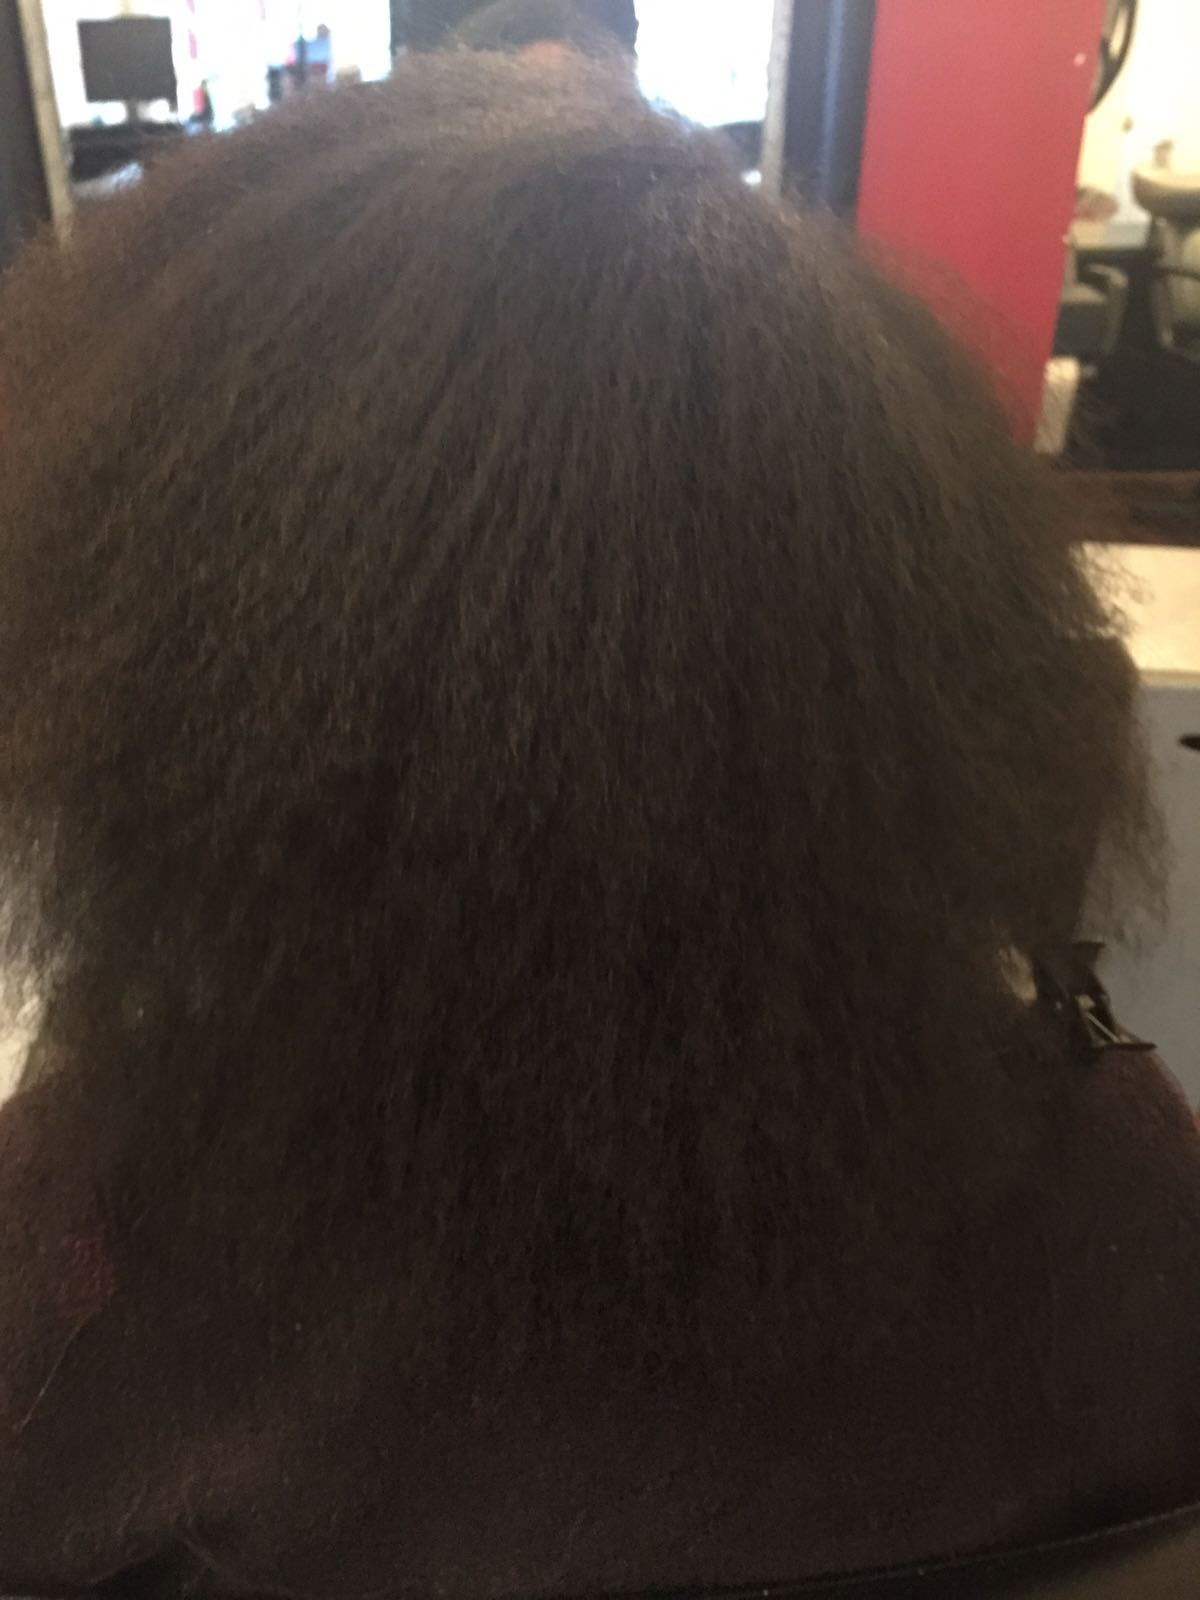 Before Brazilian Keratin Treatment